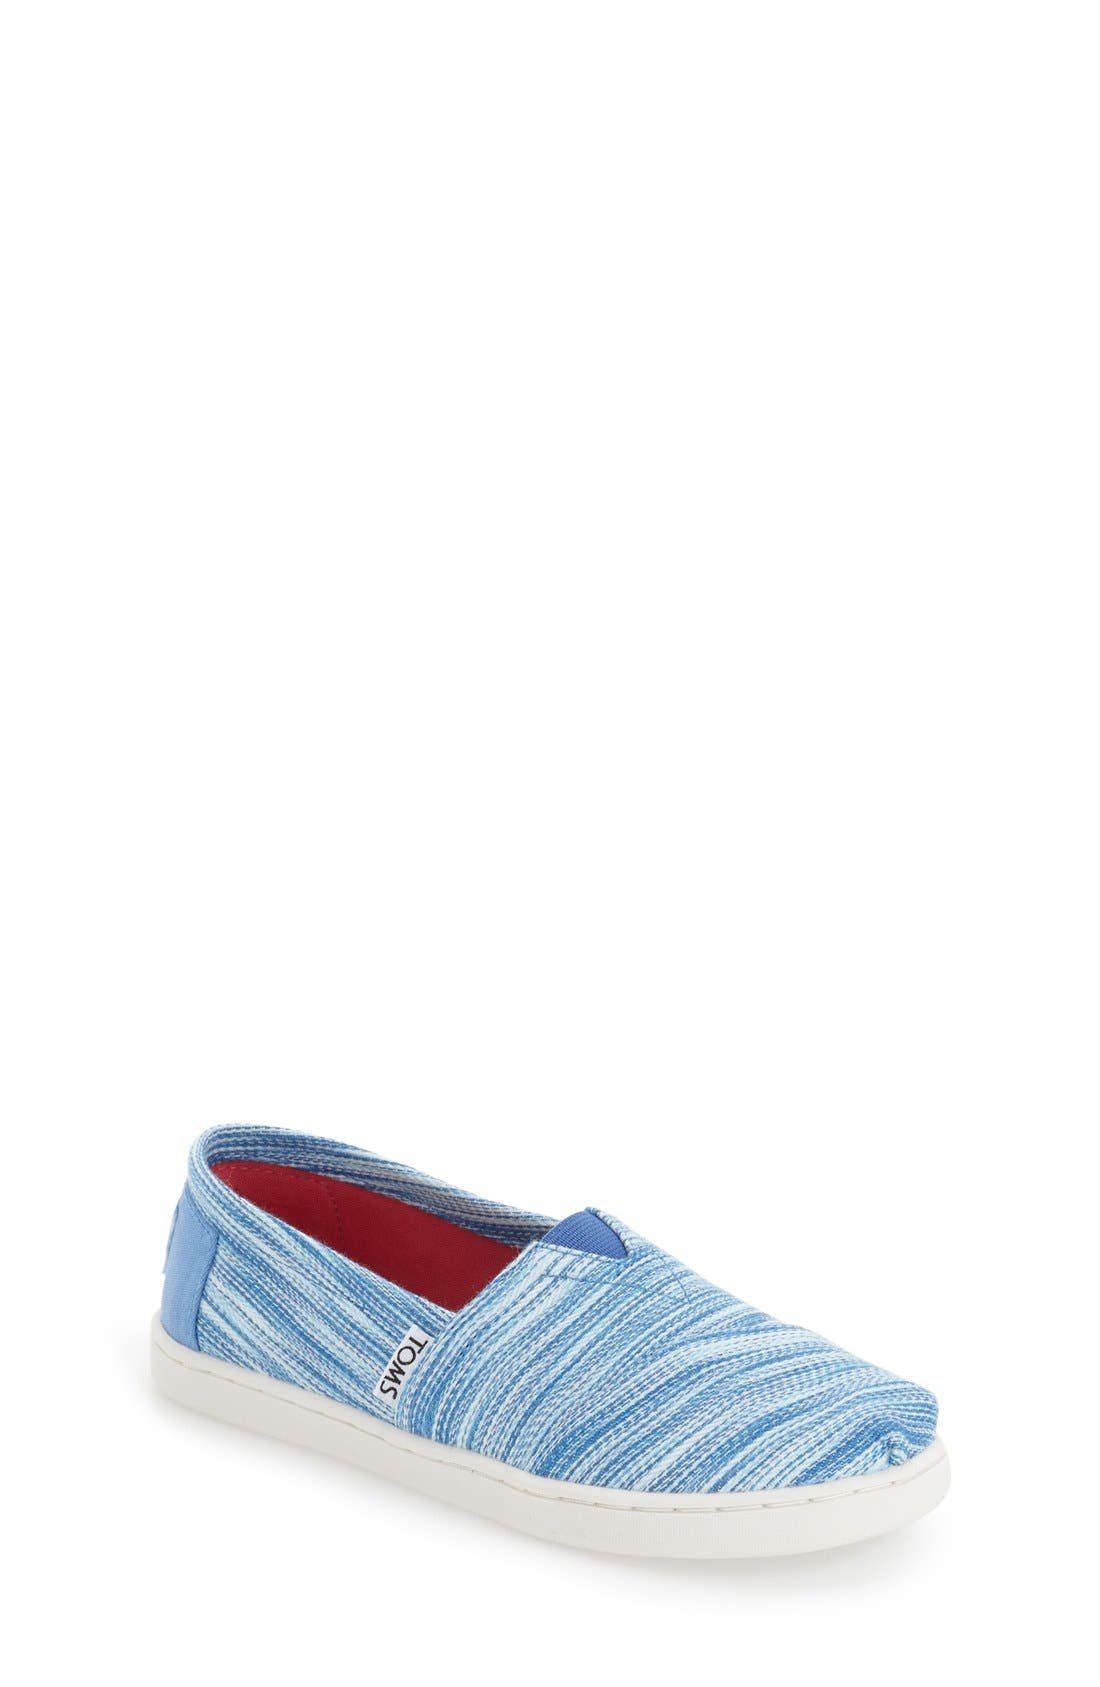 Main Image - TOMS 'Classic - Blue Space Dye' Slip-On (Baby, Walker, Toddler, Little Kid & Big Kid)